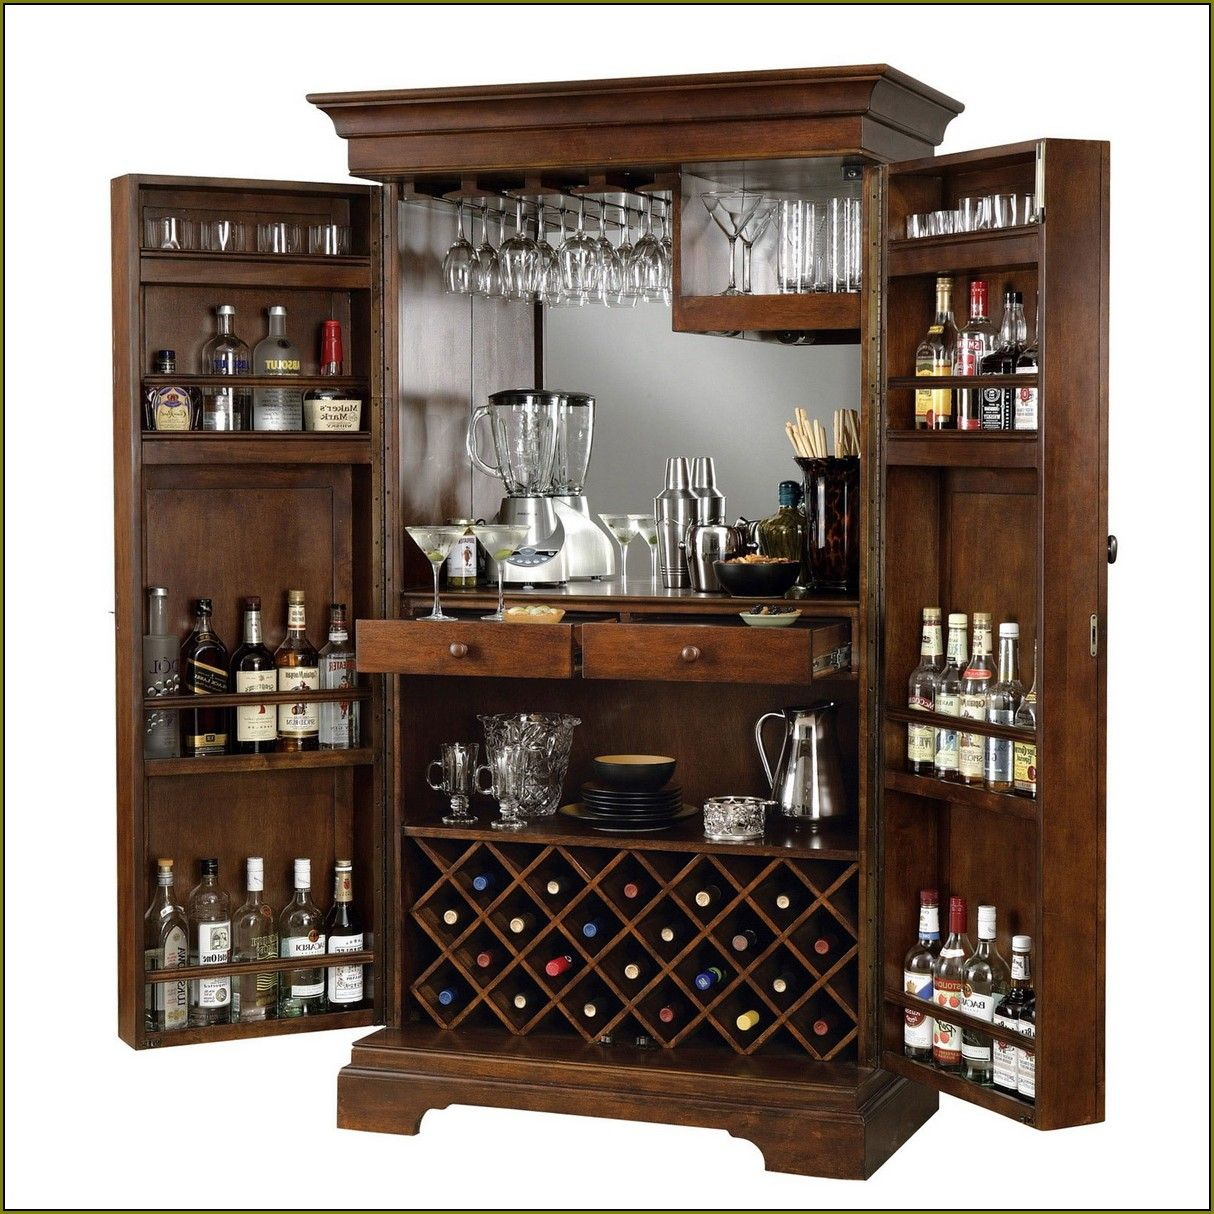 Elegant Liquor Cabinet Ikea For Home Furniture Ideas Wonderful Wooden Liquor Cabinet Ikea Plus